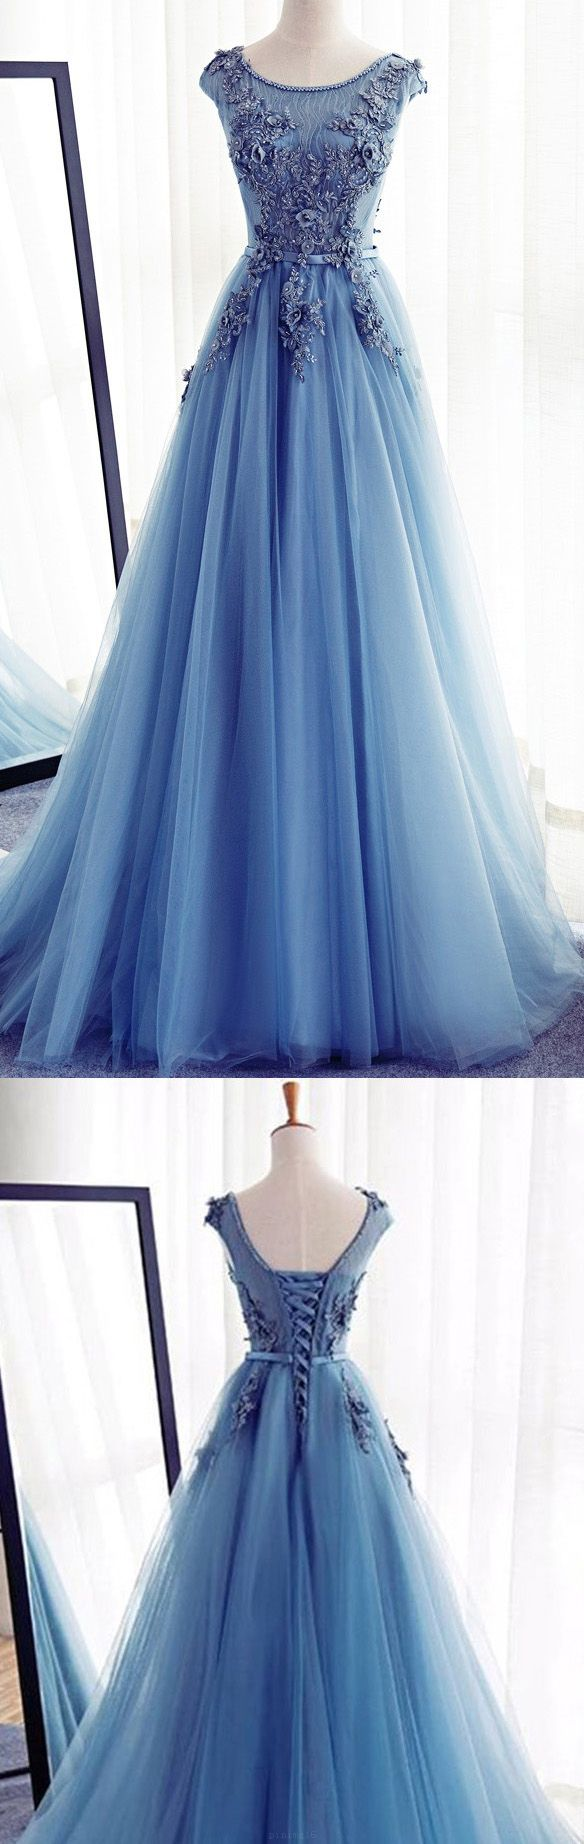 1744 best Prom Dresses images on Pinterest | Dream dress, Princess ...